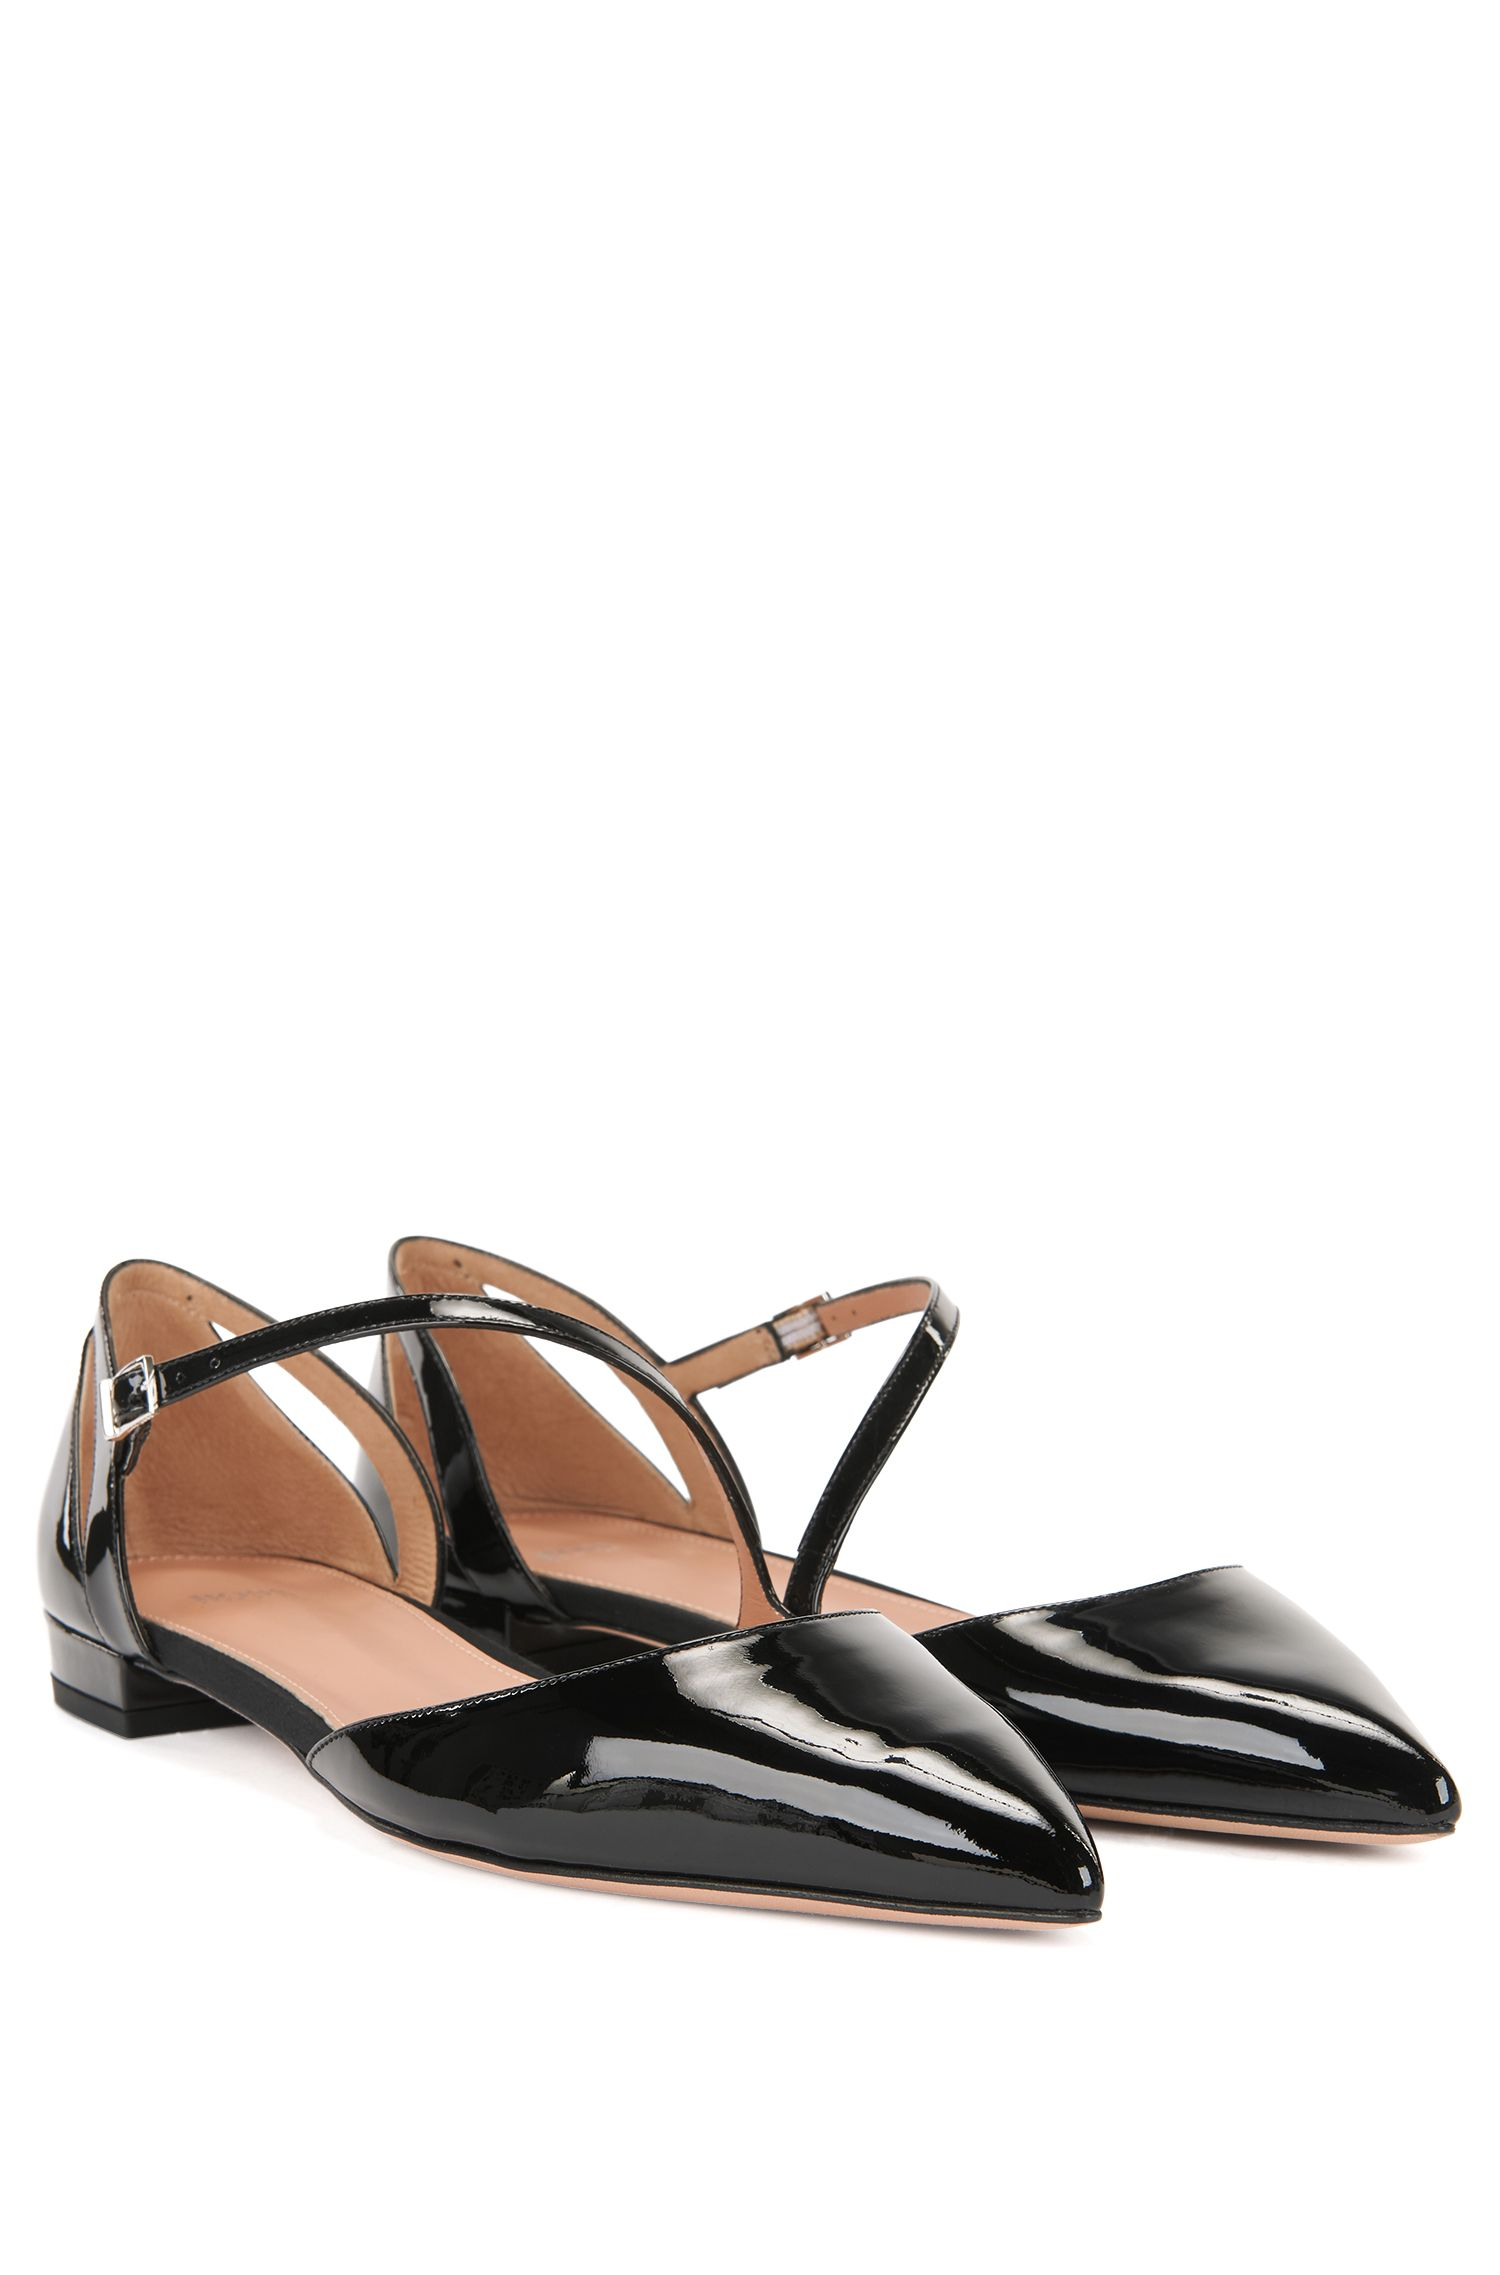 Patent calf-leather ballerina pumps with asymmetric strap BOSS